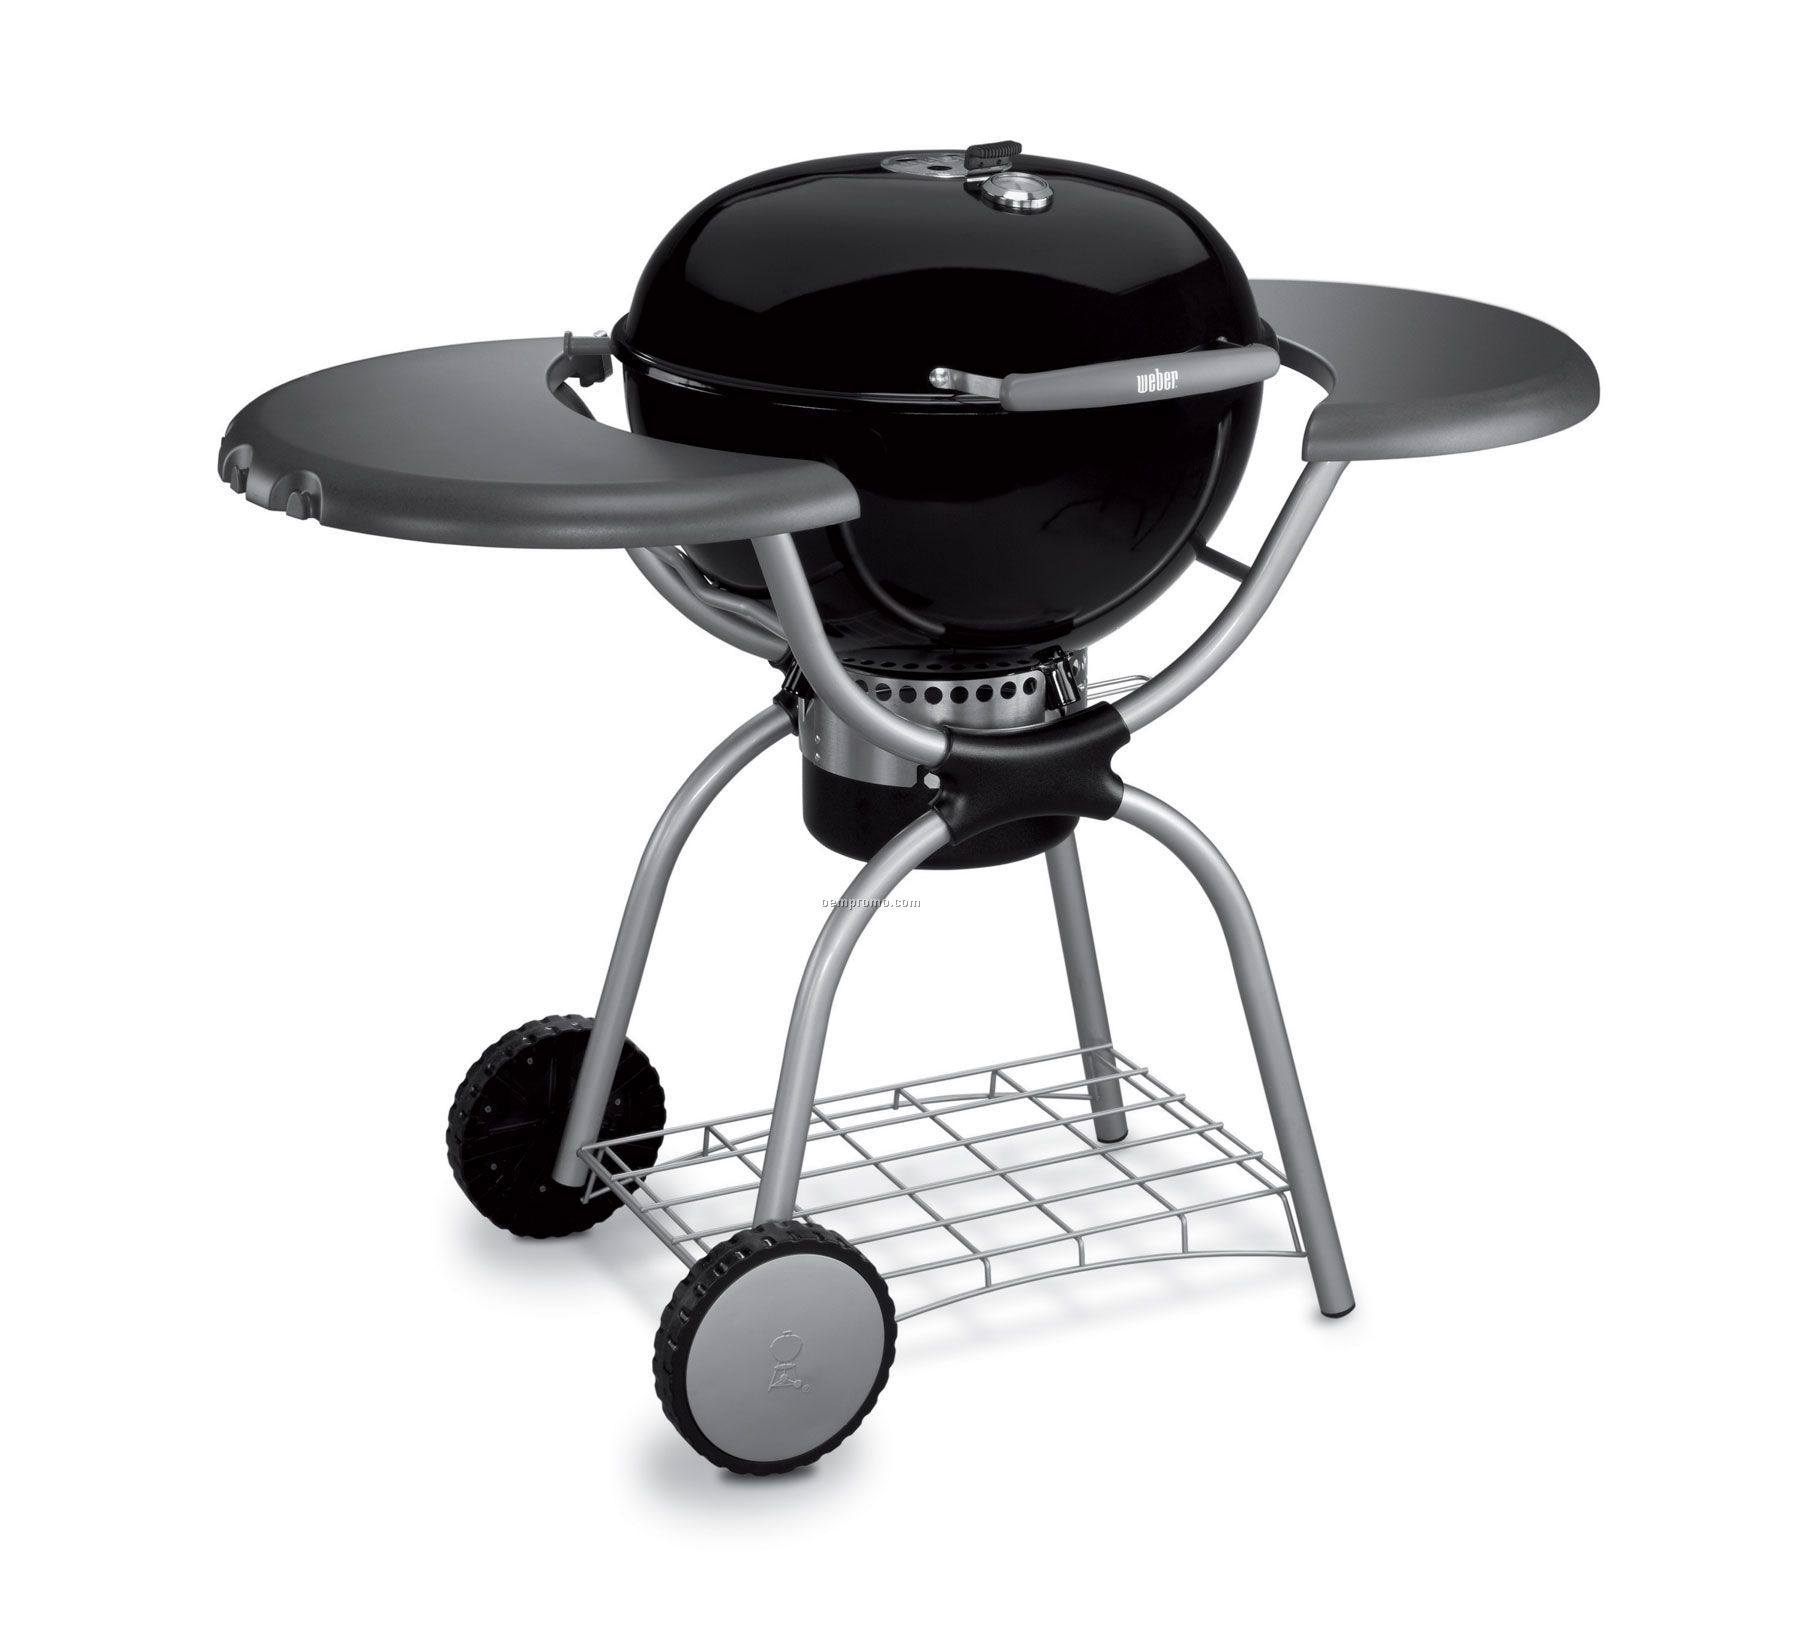 weber 22 1 2 one touch platinum charcoal grill china wholesale weber 22 1 2 one touch platinum. Black Bedroom Furniture Sets. Home Design Ideas